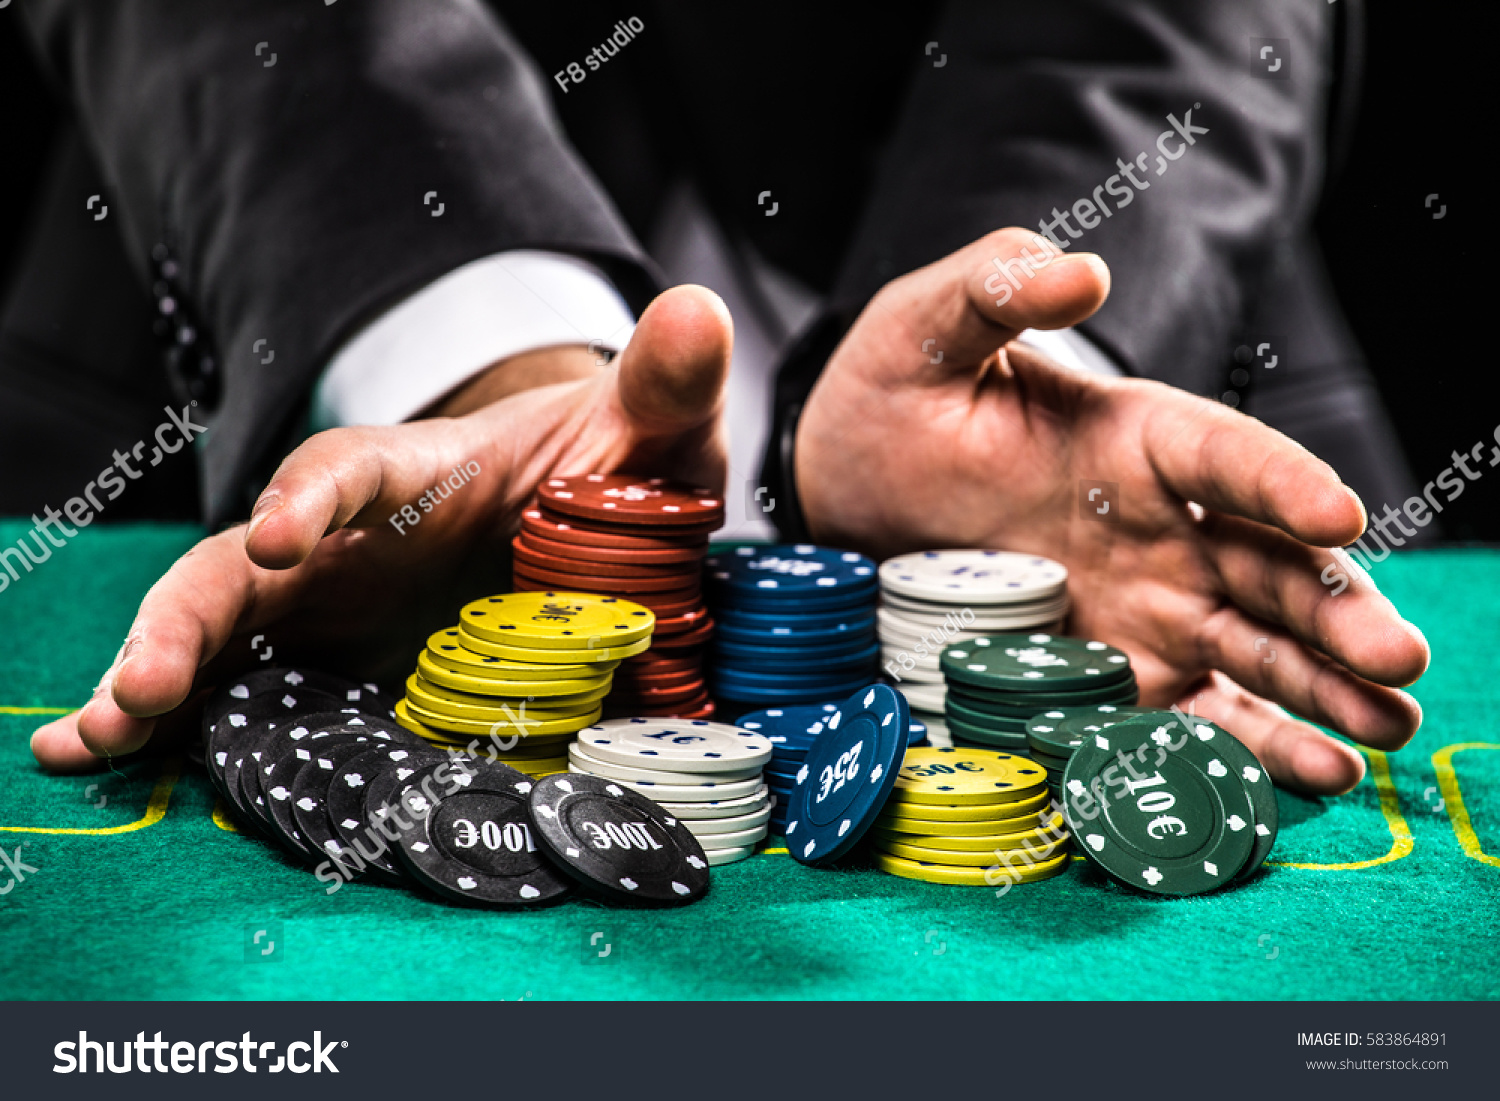 casino, gambling, poker, people and entertainment concept - close up of poker player with chips at green casino table #583864891